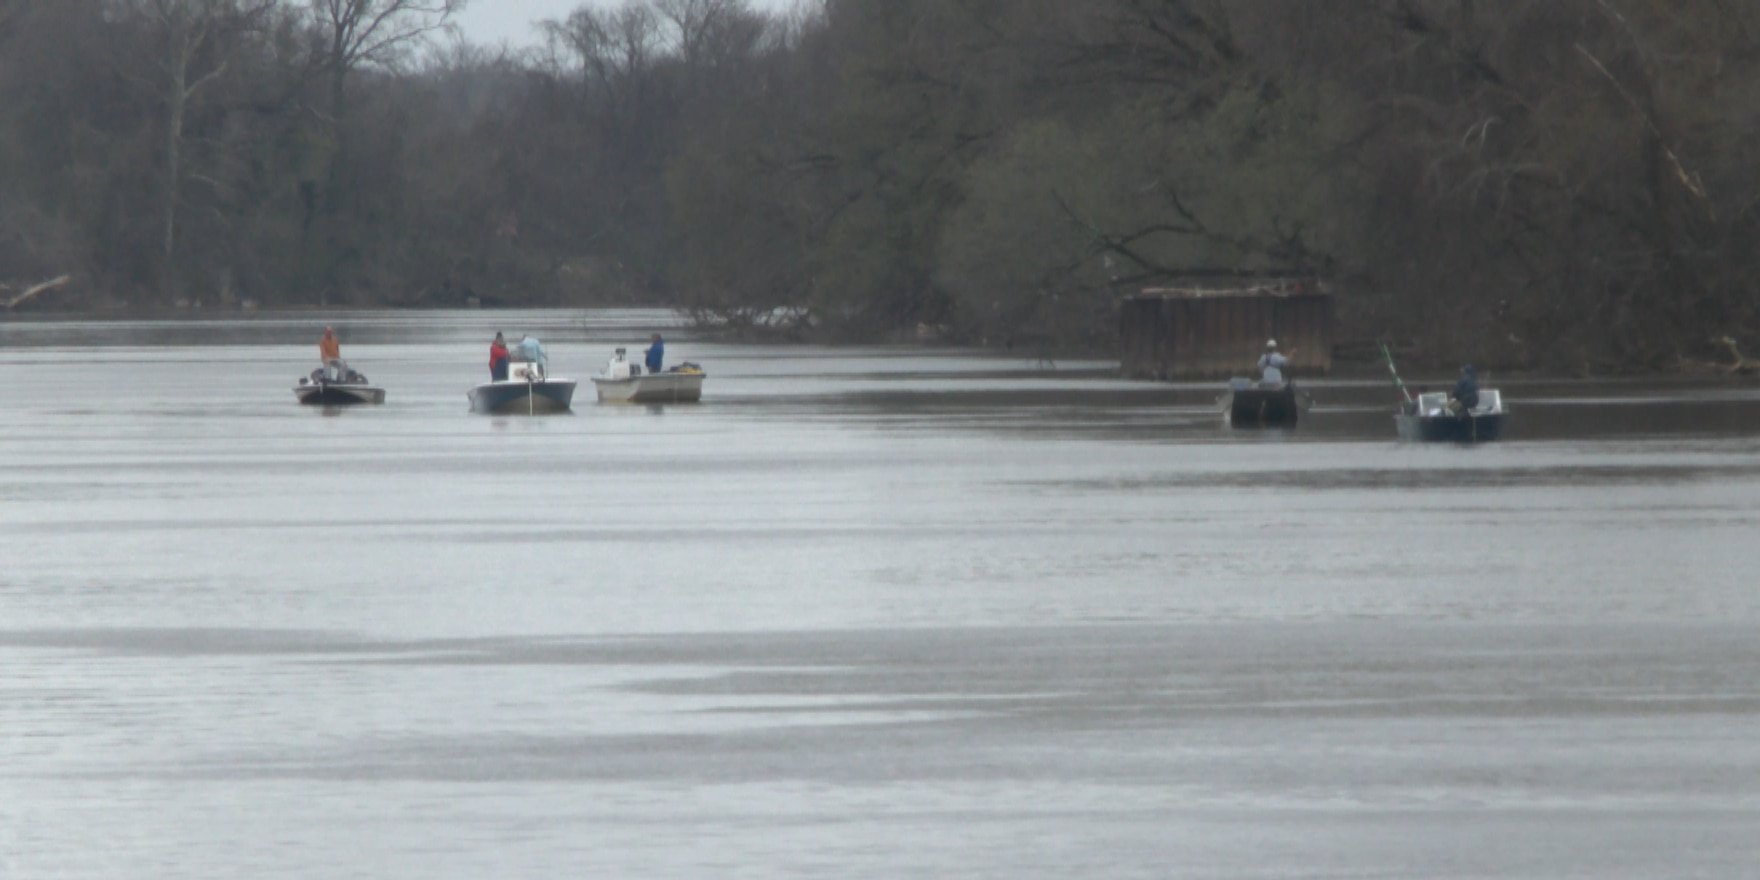 Dept. of Wildlife Resources urges caution due to cold water temperatures